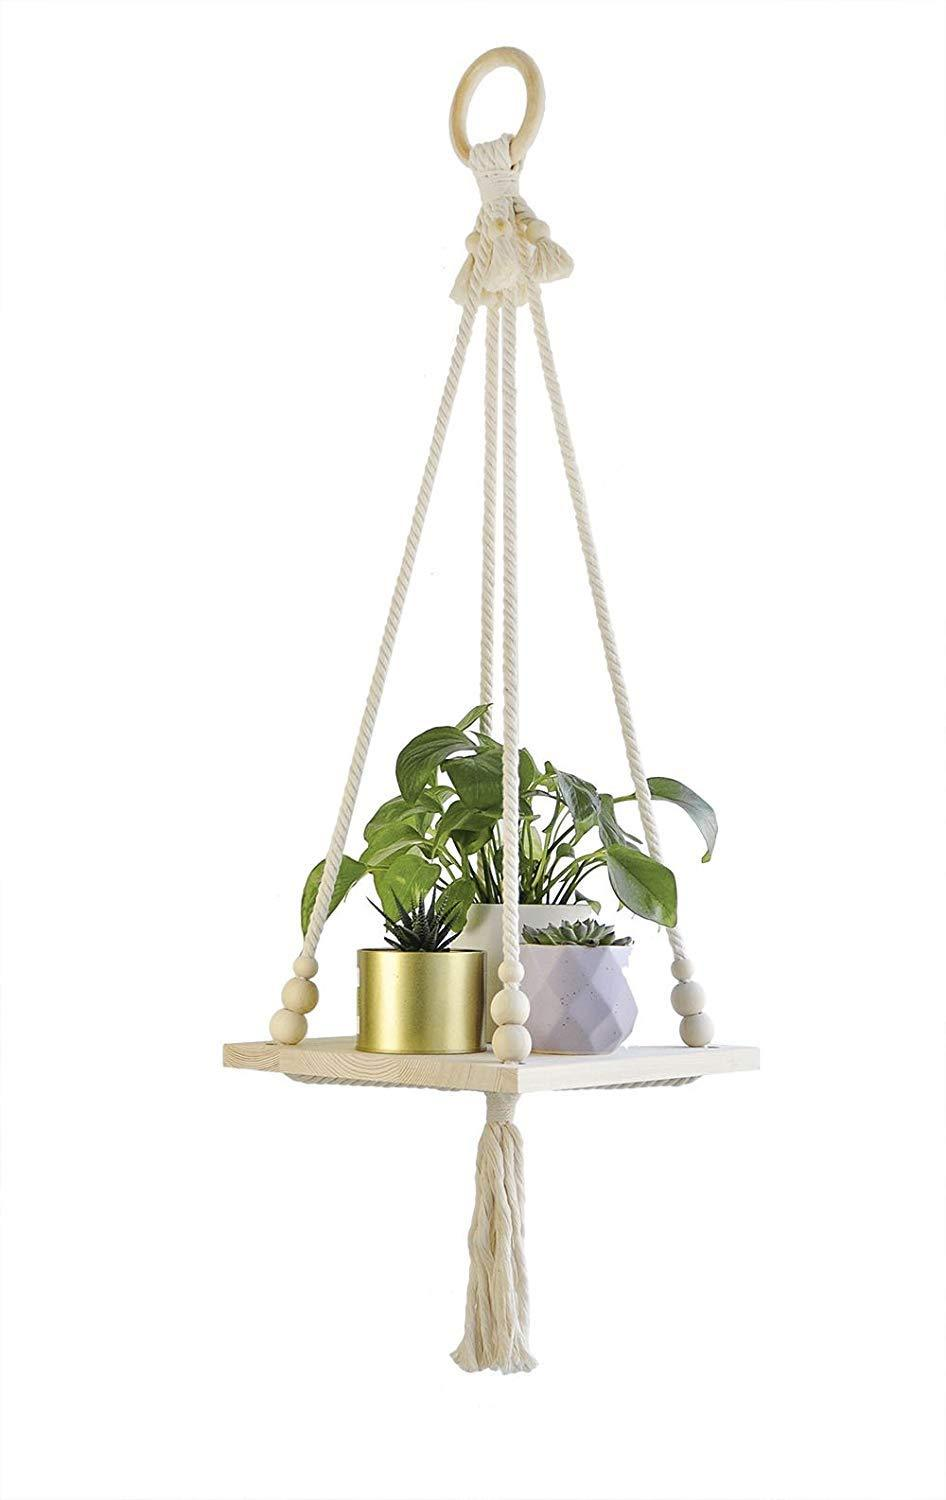 Macrame Plant Hanger Indoor Planter Hanging Shelf